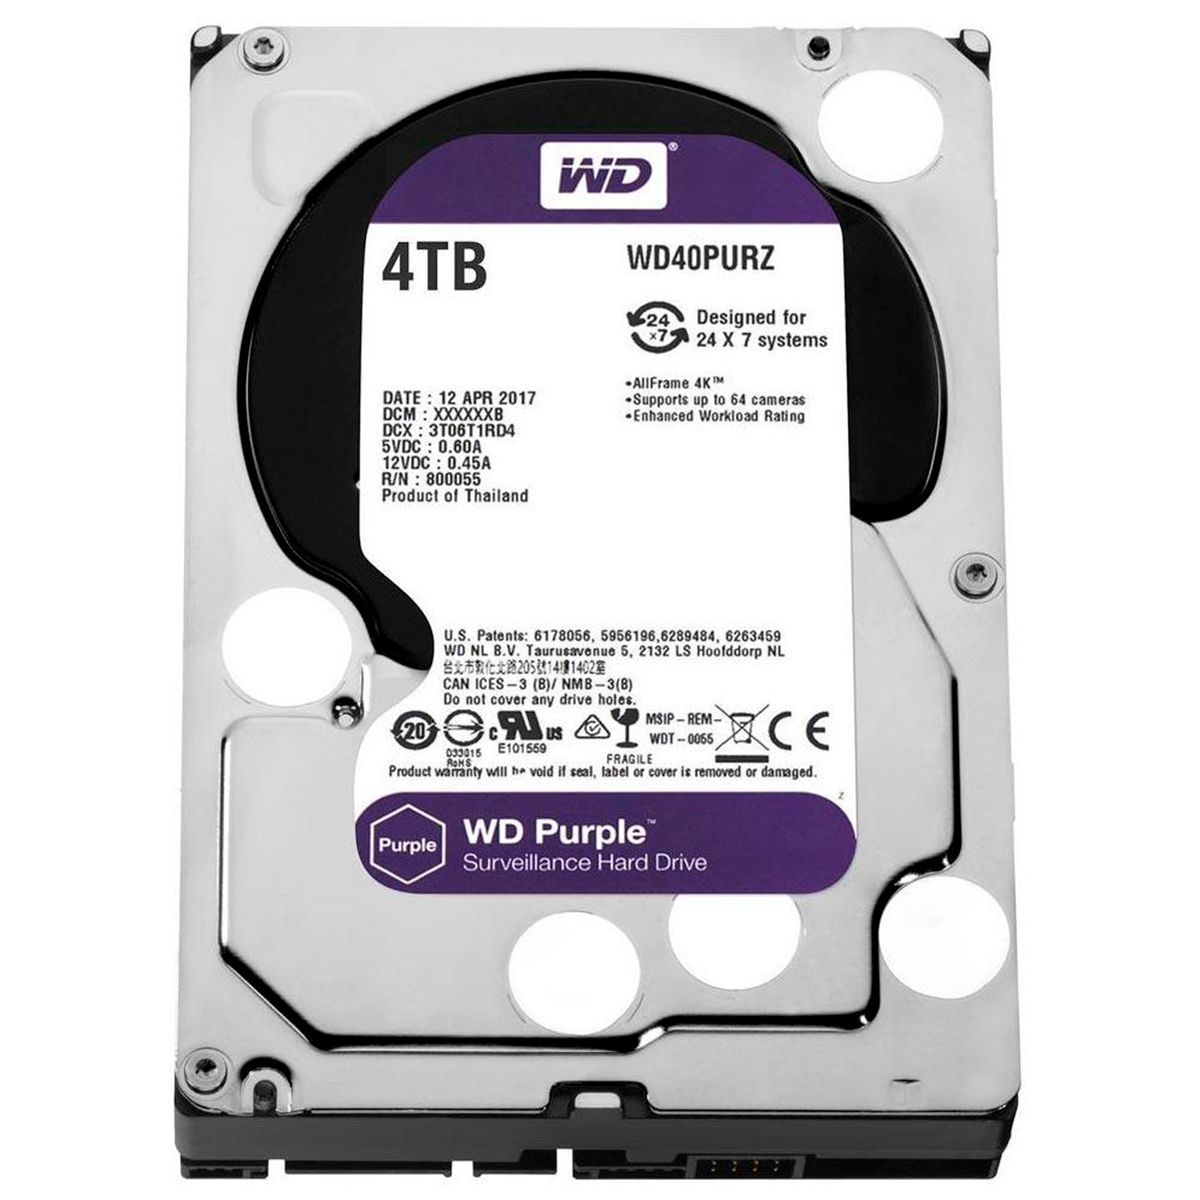 HD Interno WD Purple 4TB SATA III 6GB/s 5400 RPM WD40PURZ  - Tudo Forte